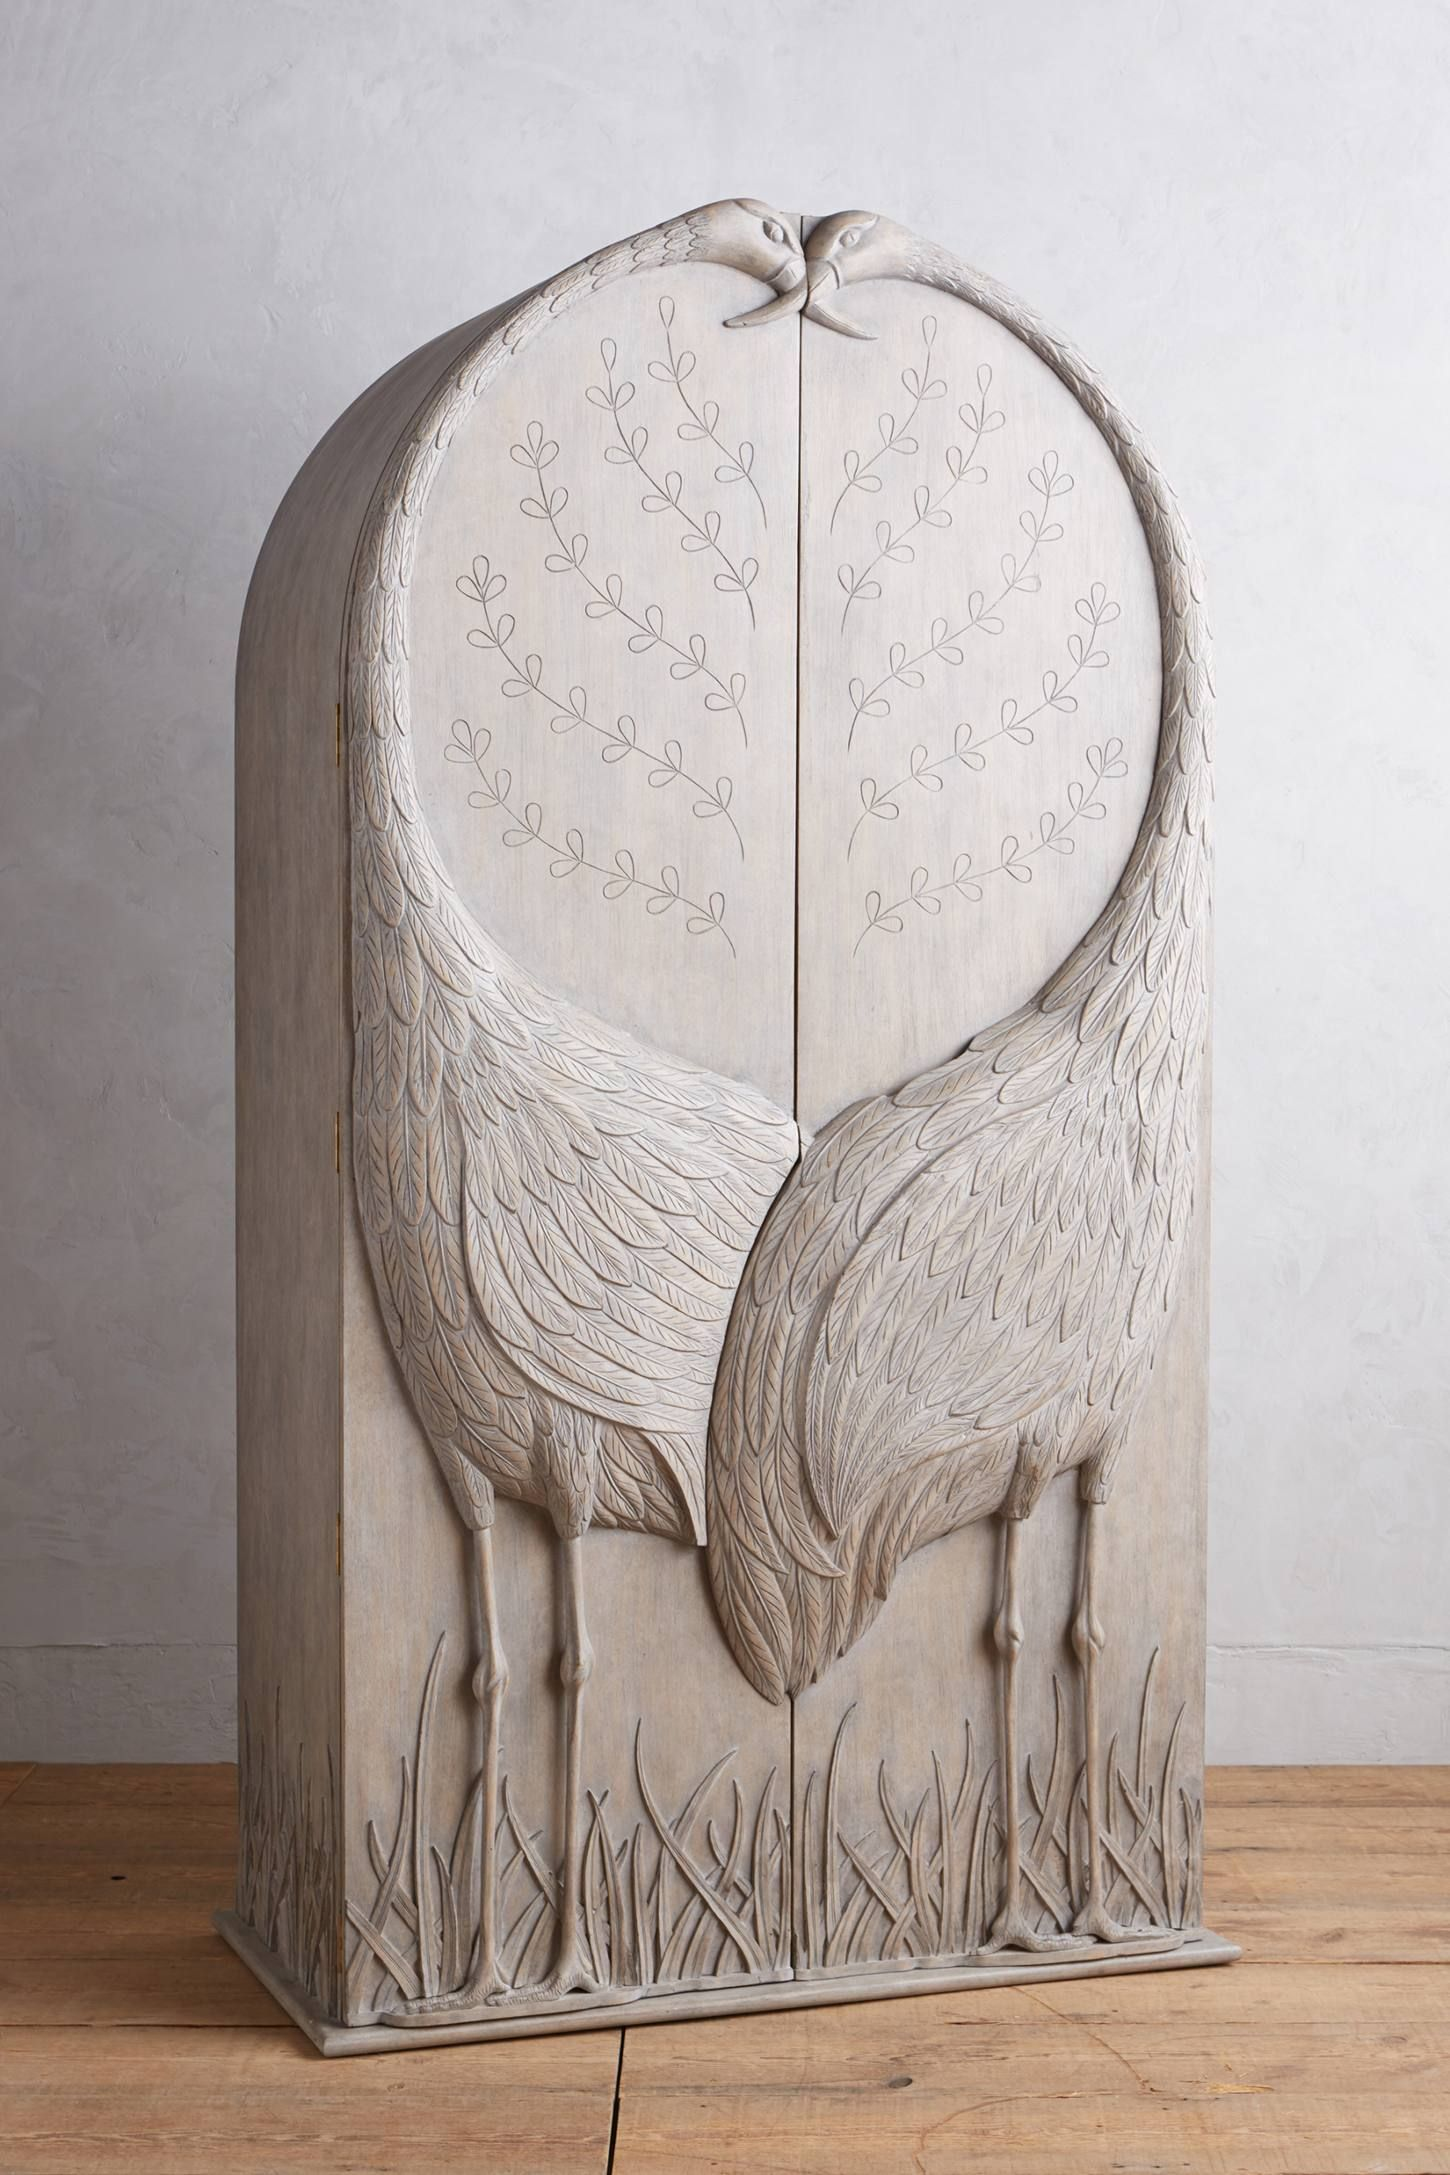 Shop The Land U0026 Sky Armoire And More Anthropologie At Anthropologie Today.  Read Customer Reviews, Discover Product Details And More.